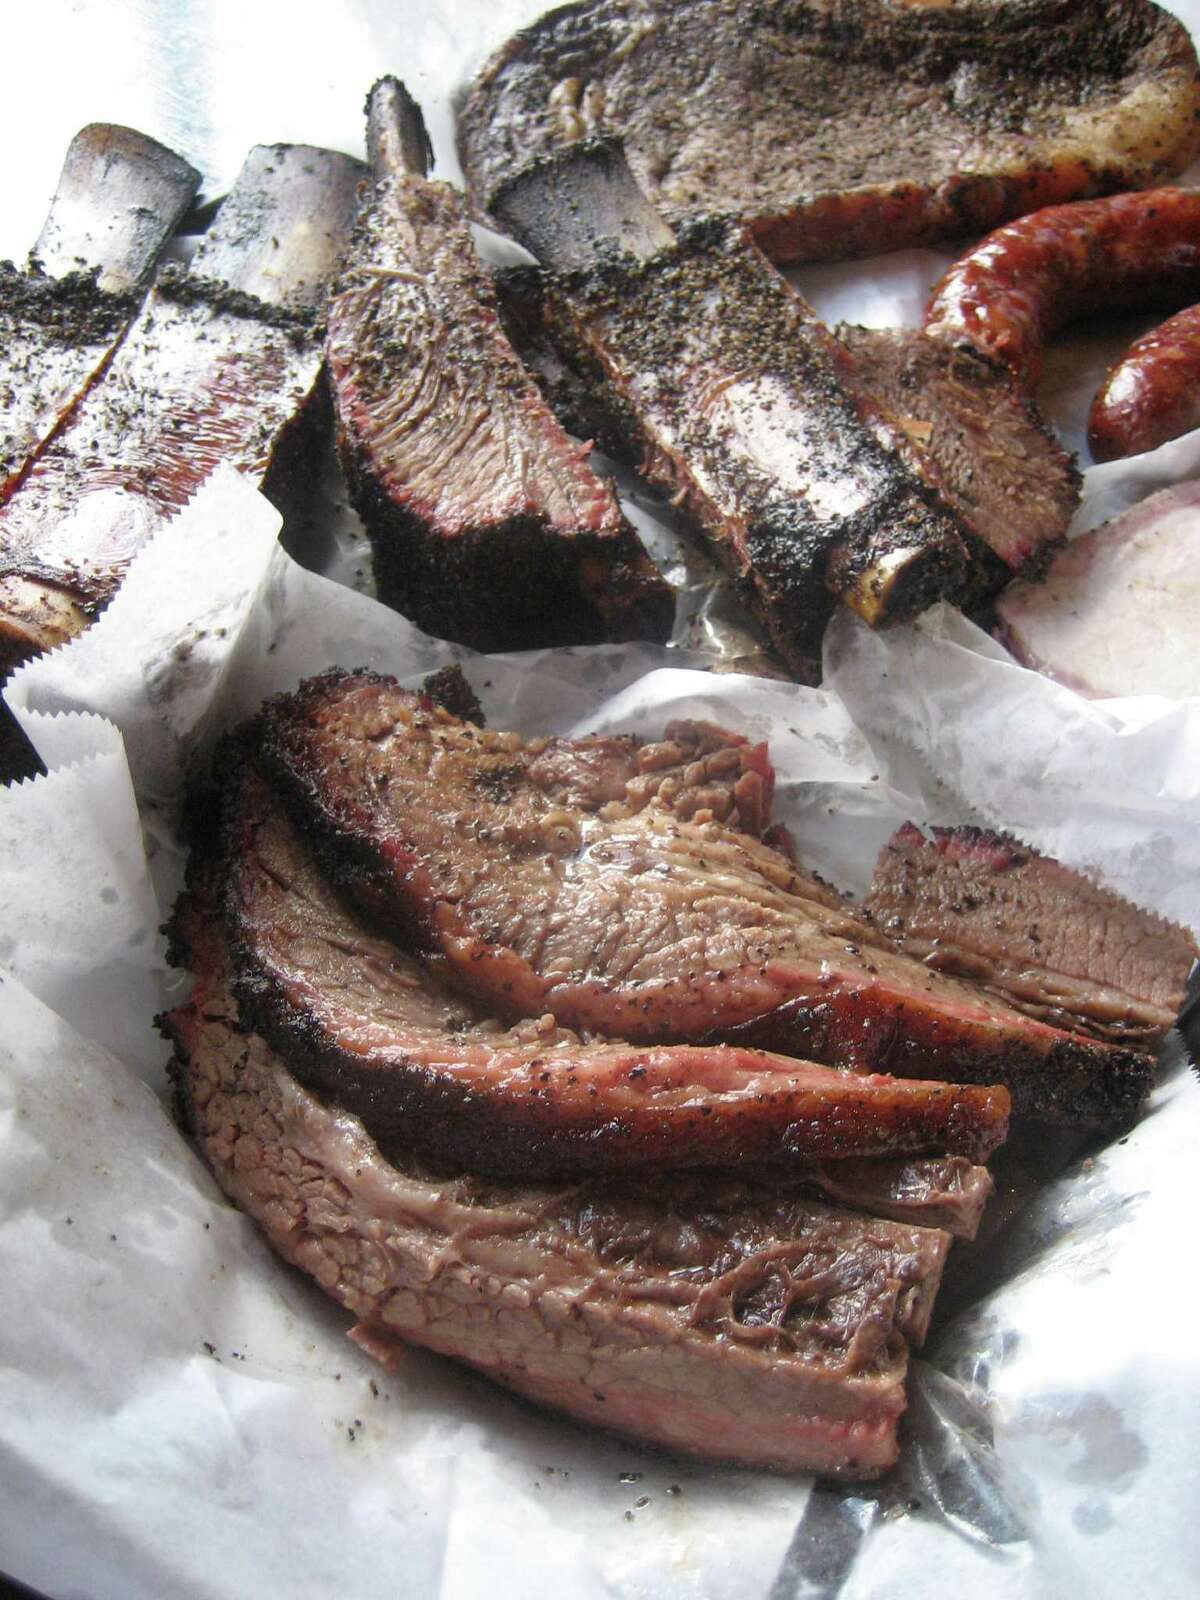 Beef ribs as served at Louie Mueller Barbecue in Taylor, Tx.